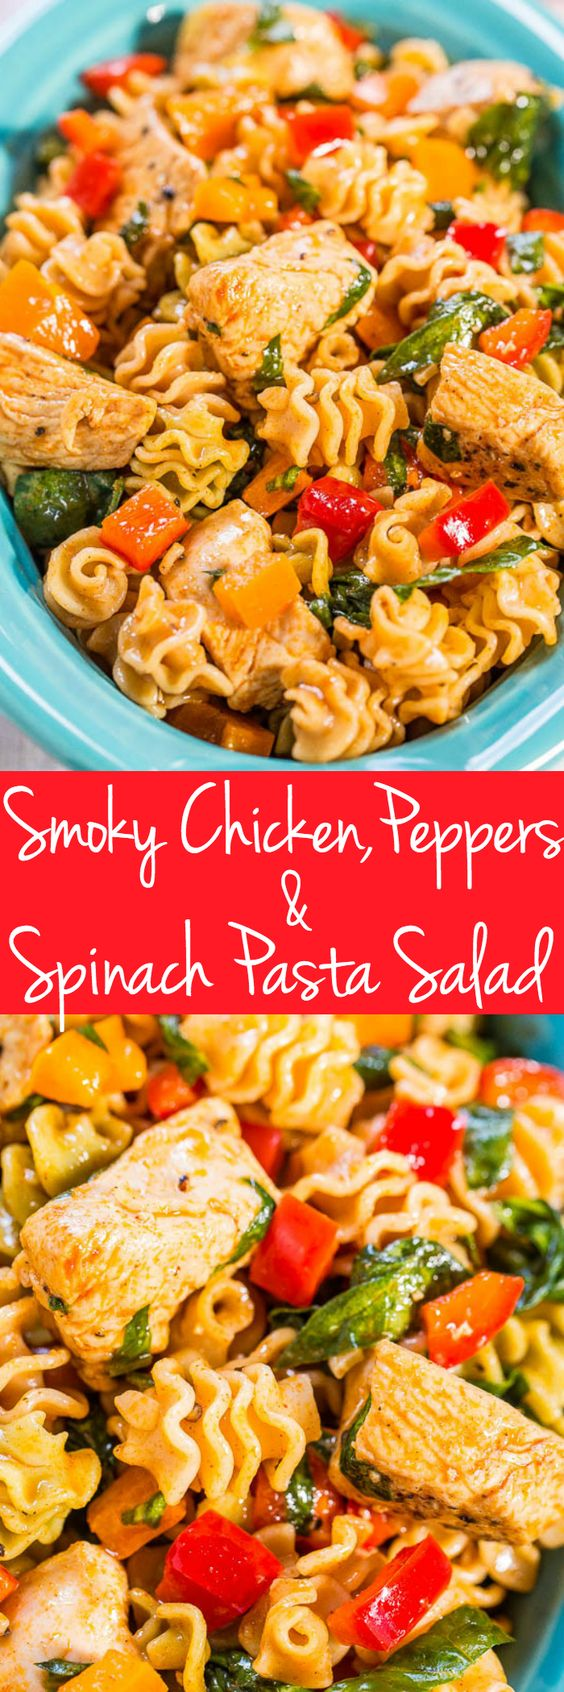 Smoky Chicken, Peppers, and Spinach Pasta Salad | Spinach Pasta Salads ...